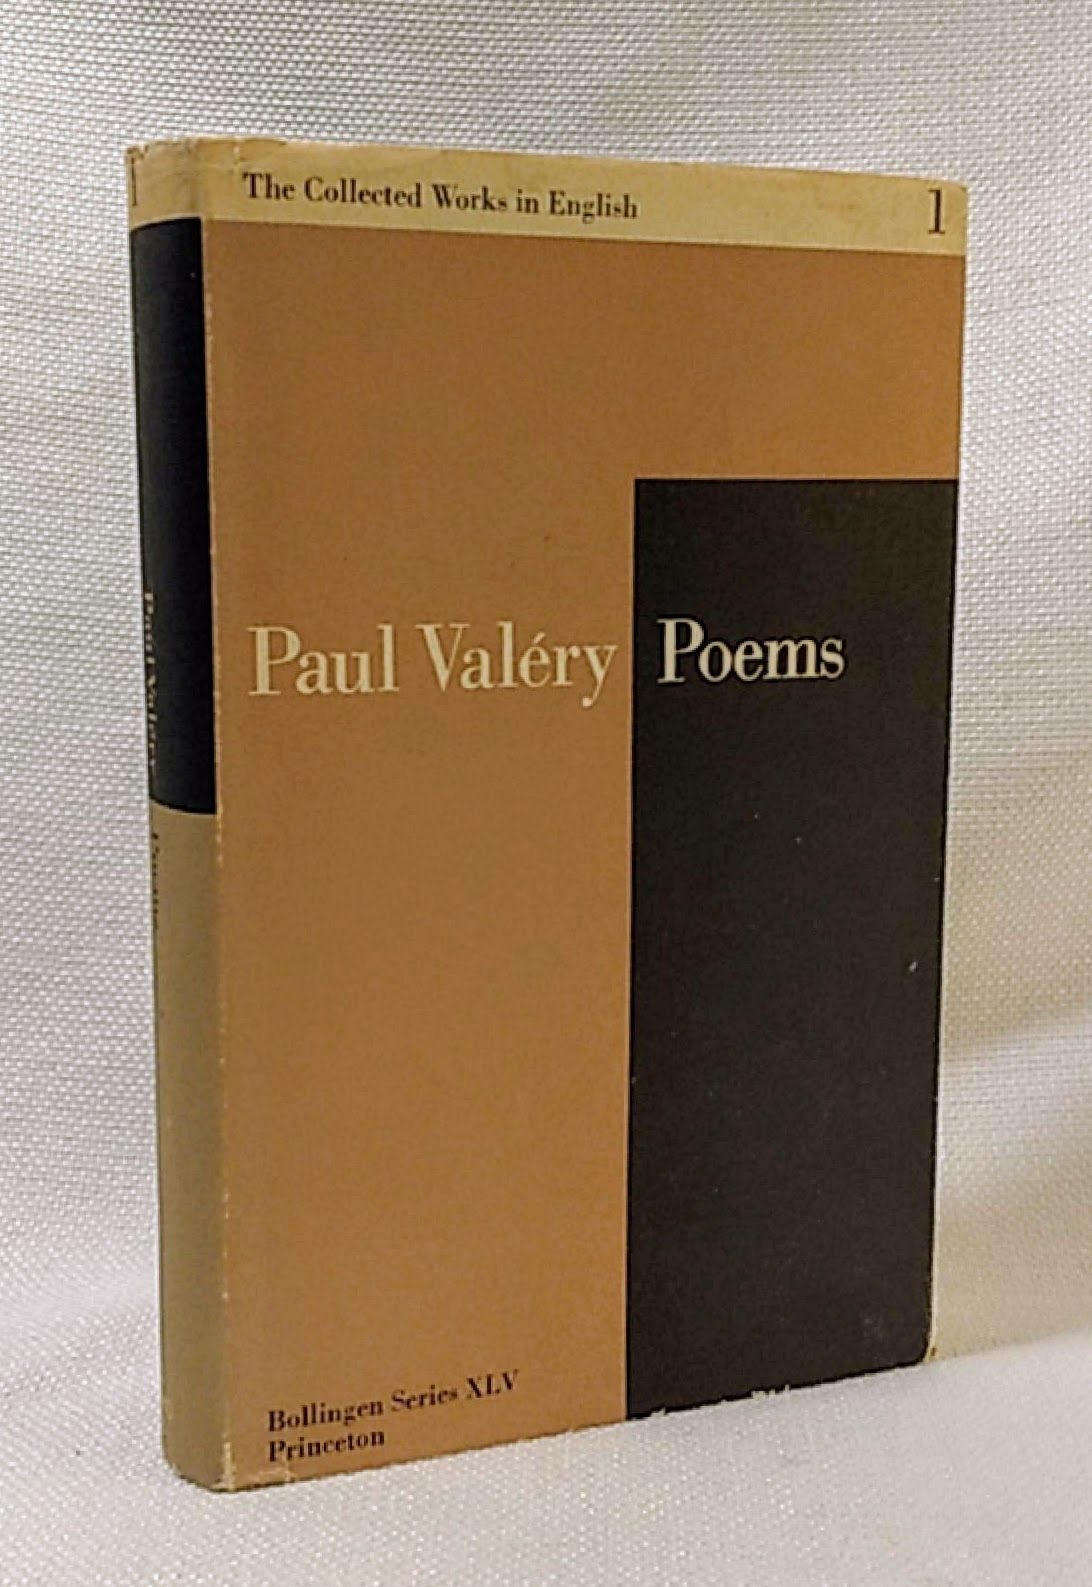 The Collected Works of Paul Valery, Vol. 1: Poems (Bollingen) (French and English Edition)